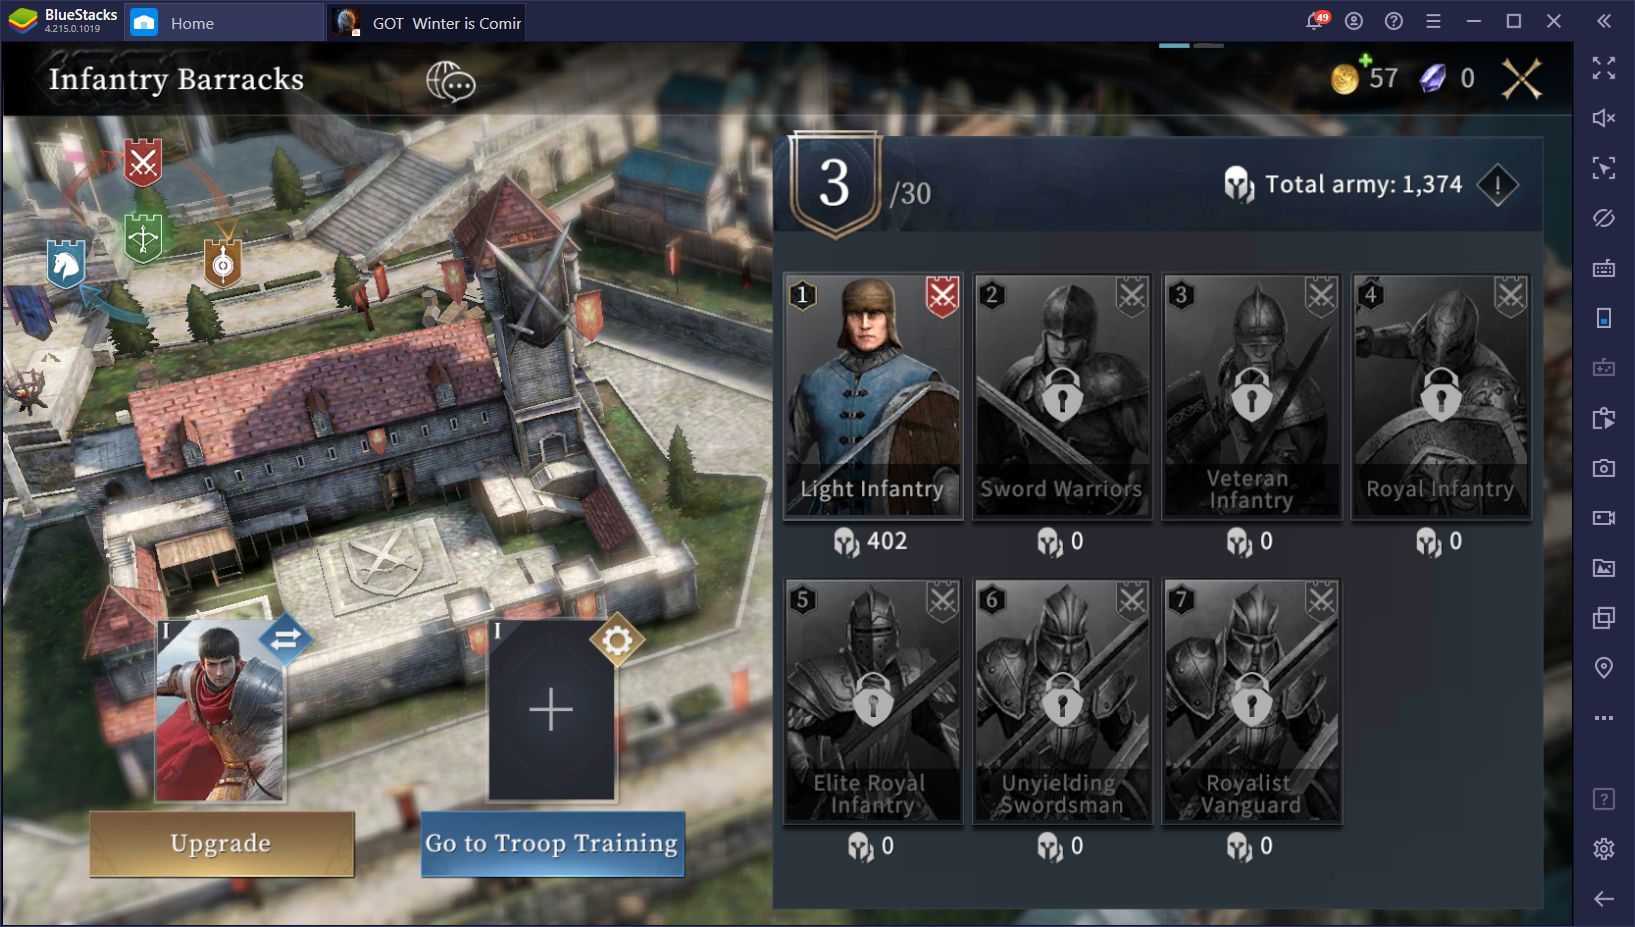 GOT: Winter is Coming – A Sneak Peek of This Upcoming Strategy Game